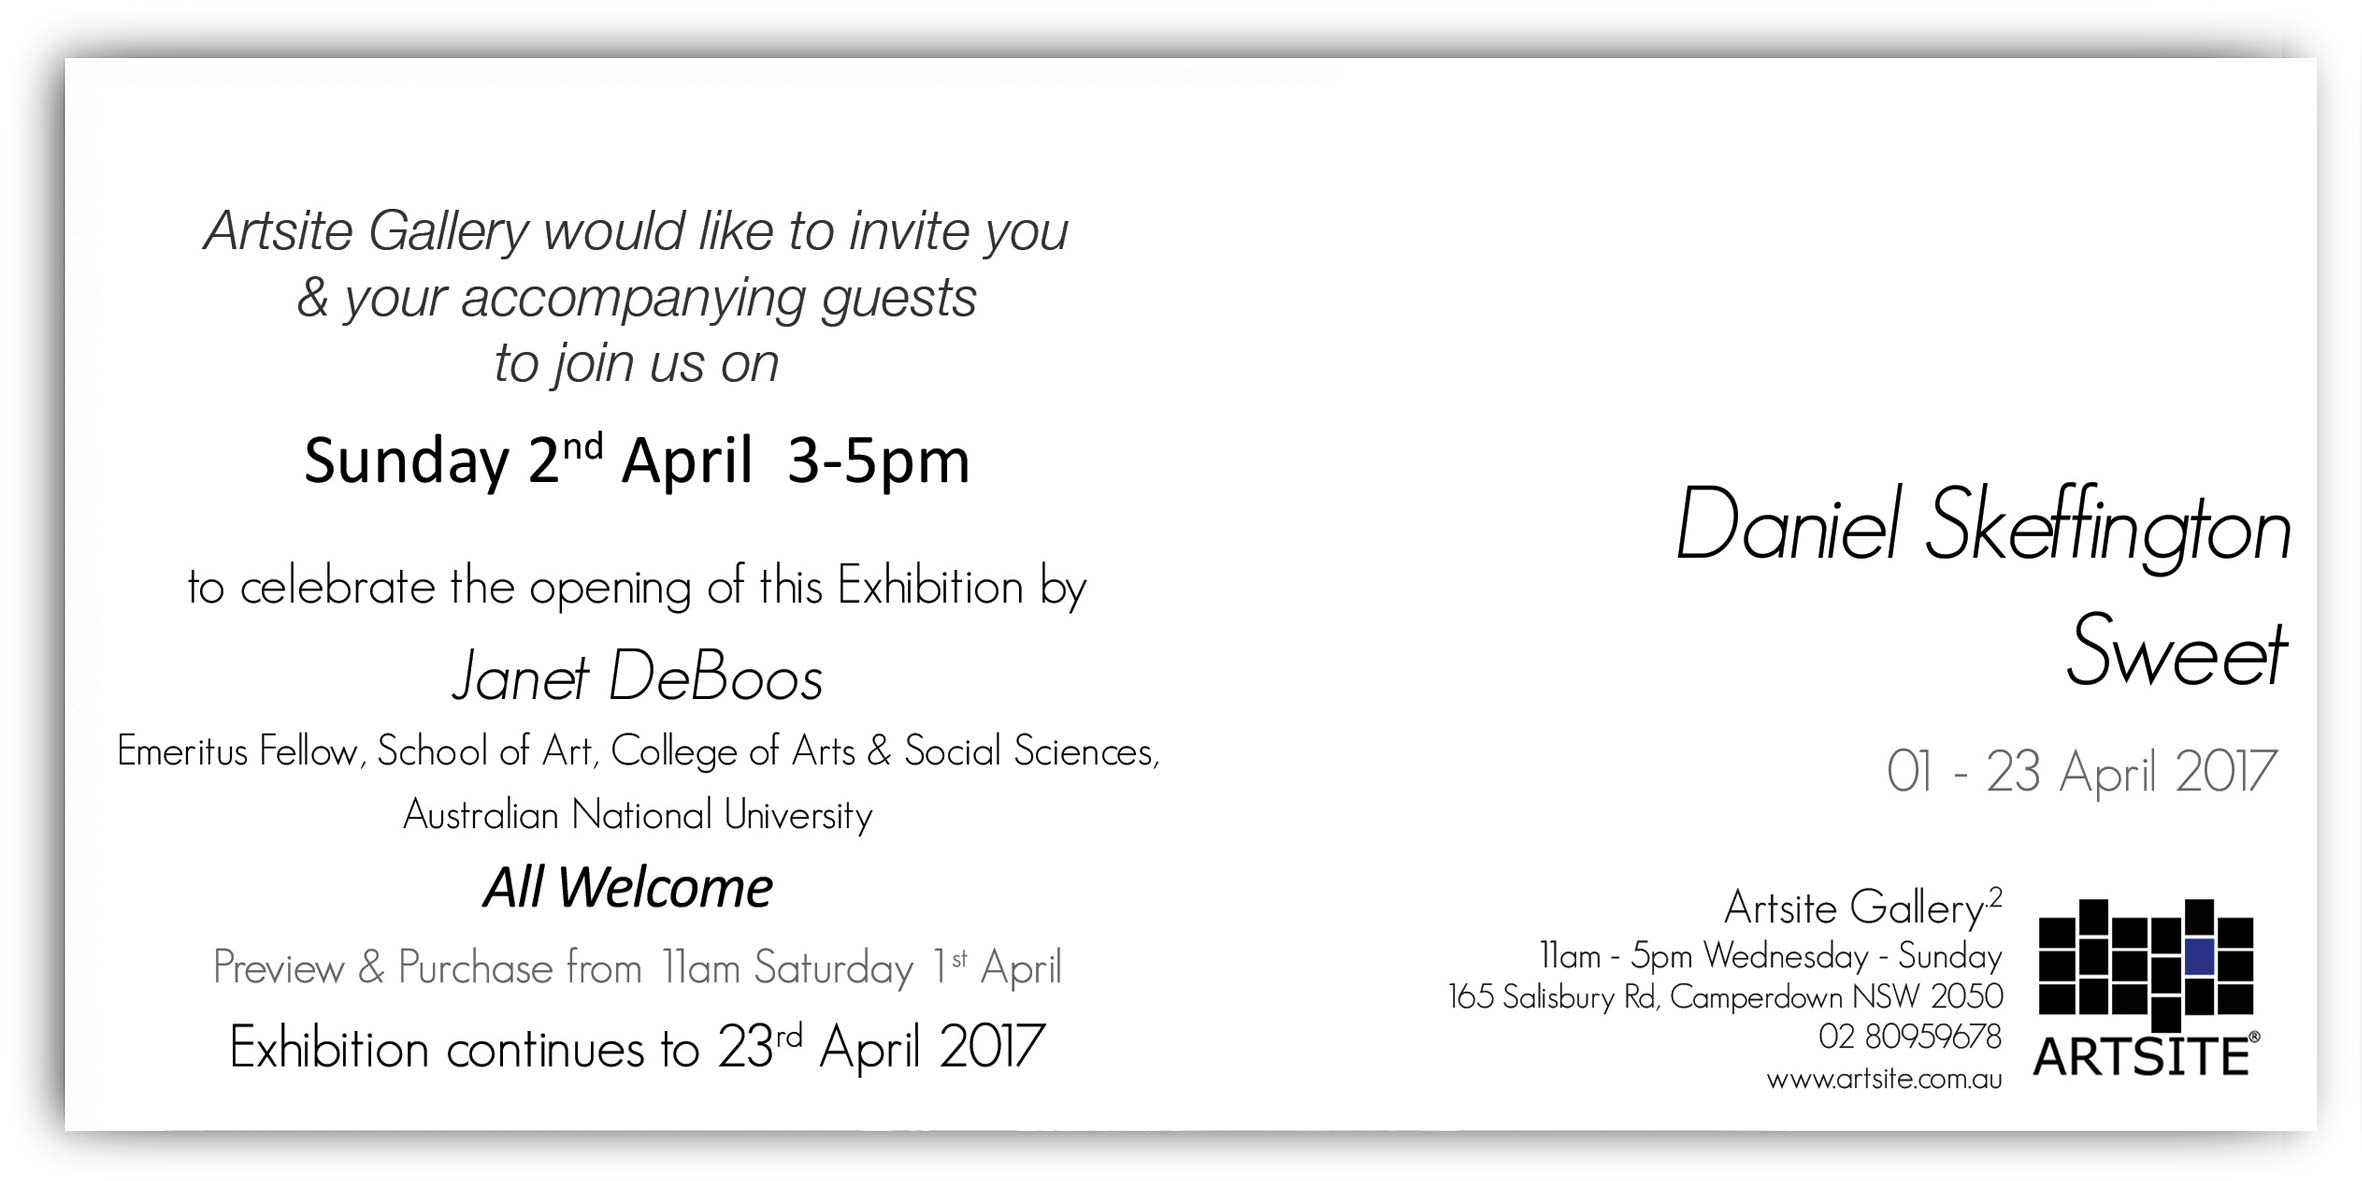 Daniel Skeffington: Sweet. Solo Exhibition Artsite Gallery_2, 01-23 April  2017. Opening event Sunday 5th April 3-5pm. All Welcome.